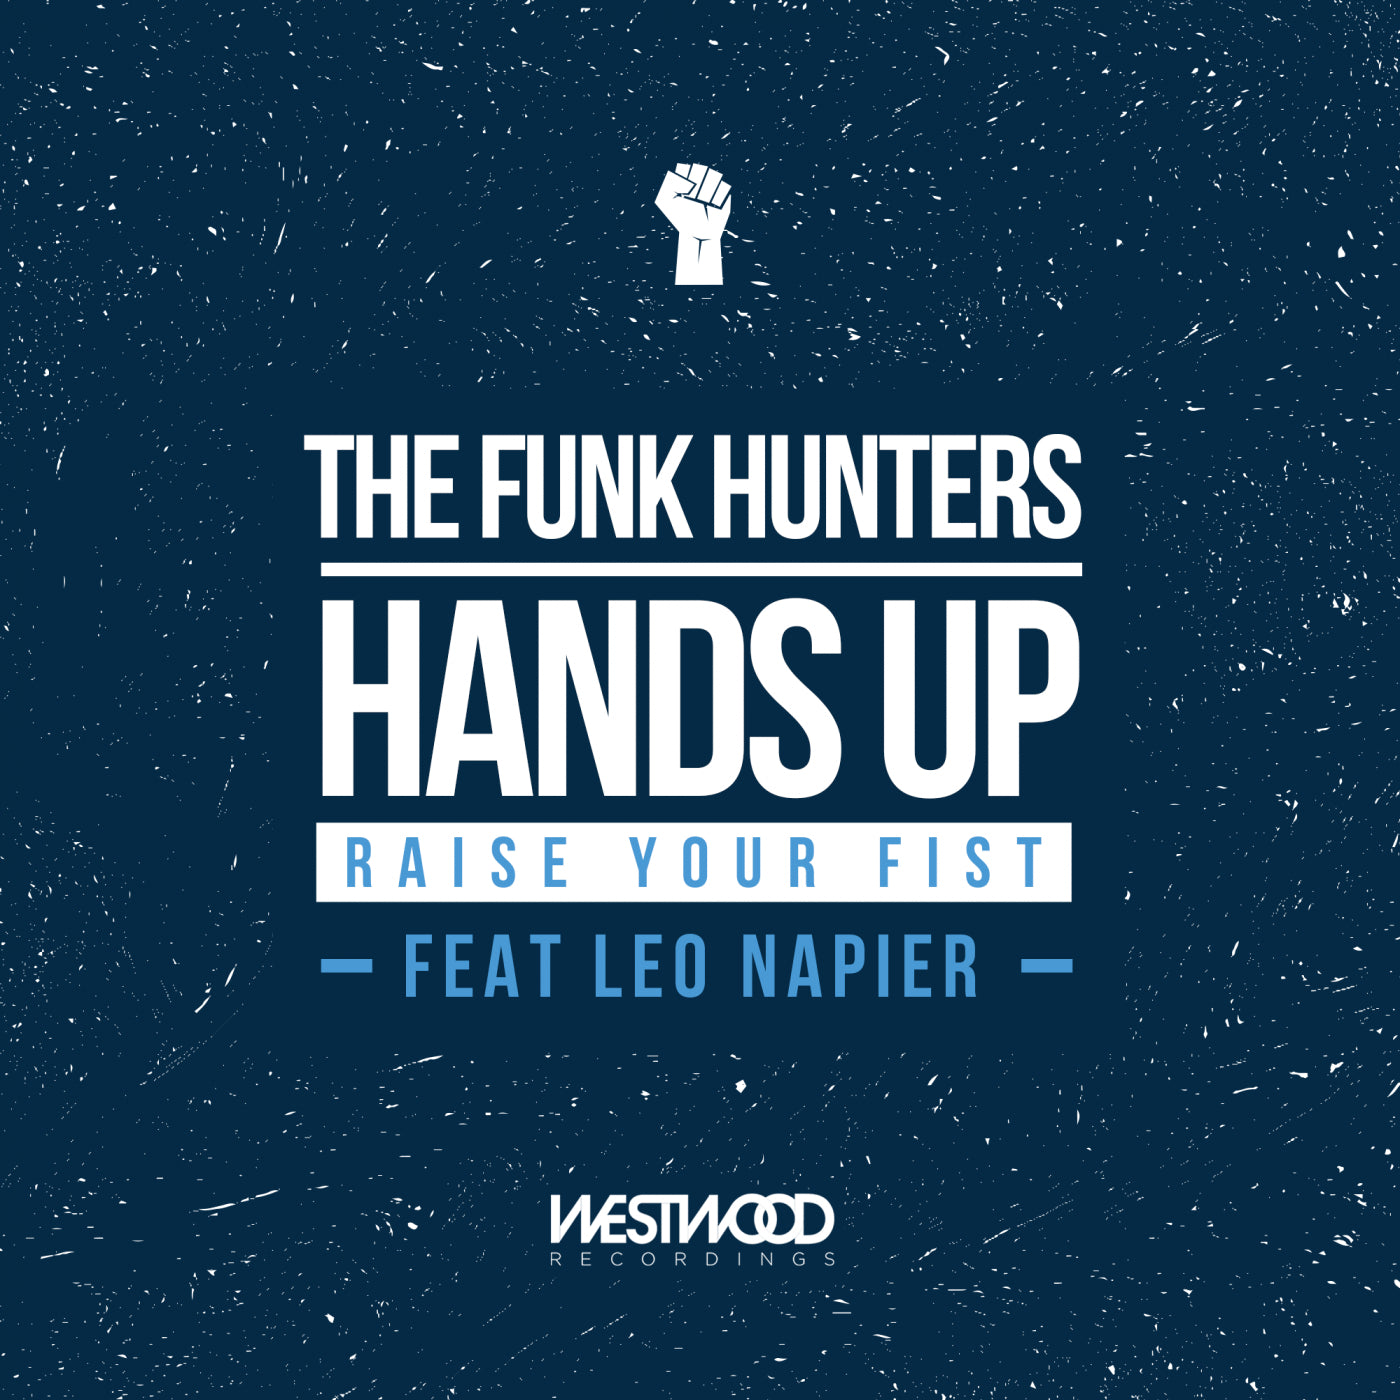 The Funk Hunters - Hands Up (Raise Your Fist)